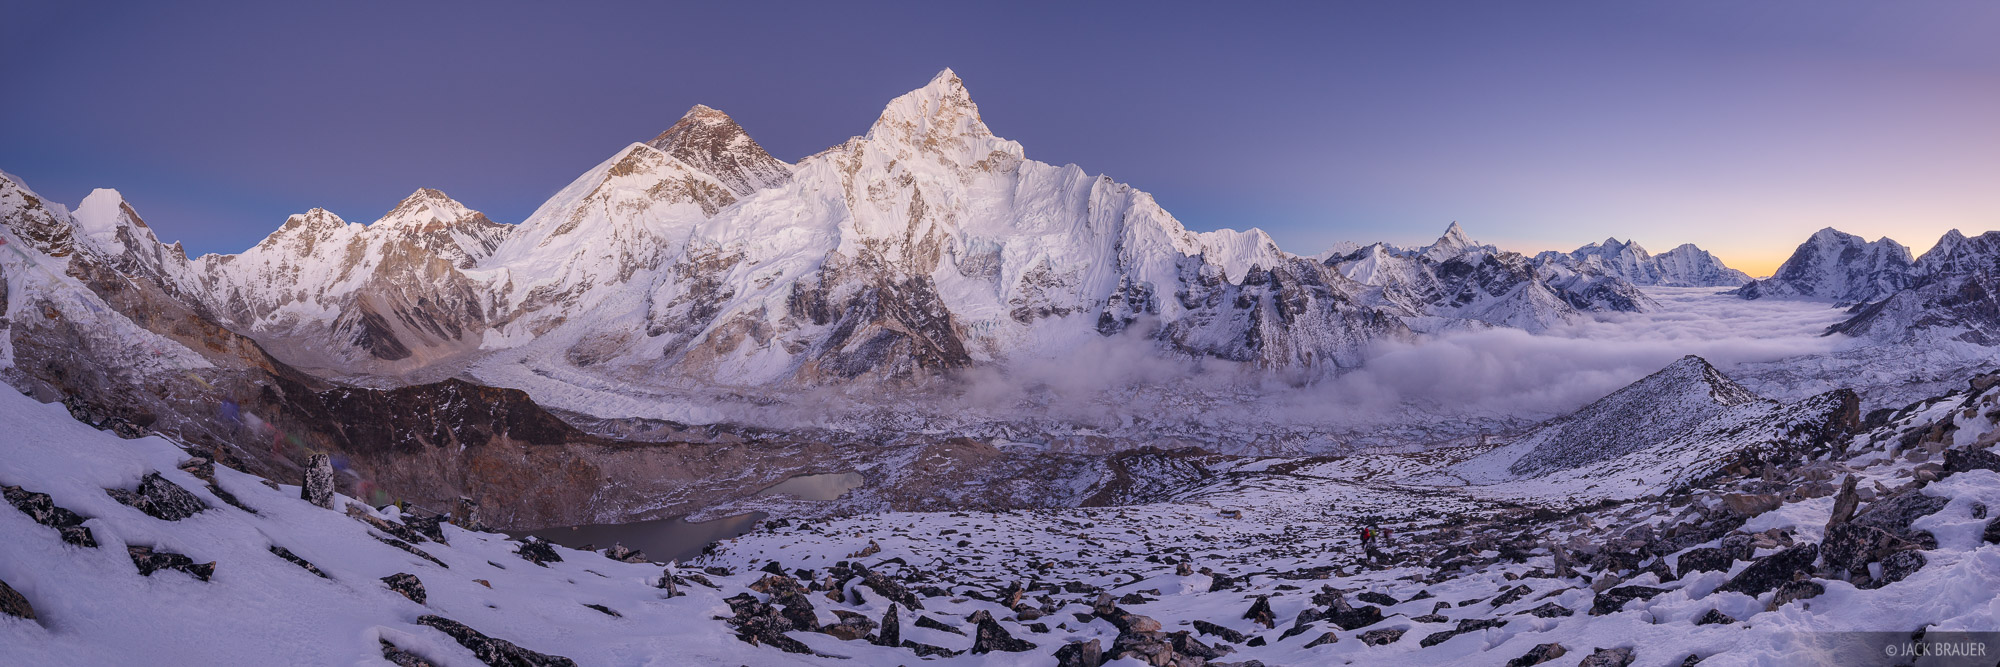 Himalaya,Kala Patthar,Khumbu,Mt. Everest,Nepal,Nuptse, Ama Dablam, panorama, photo